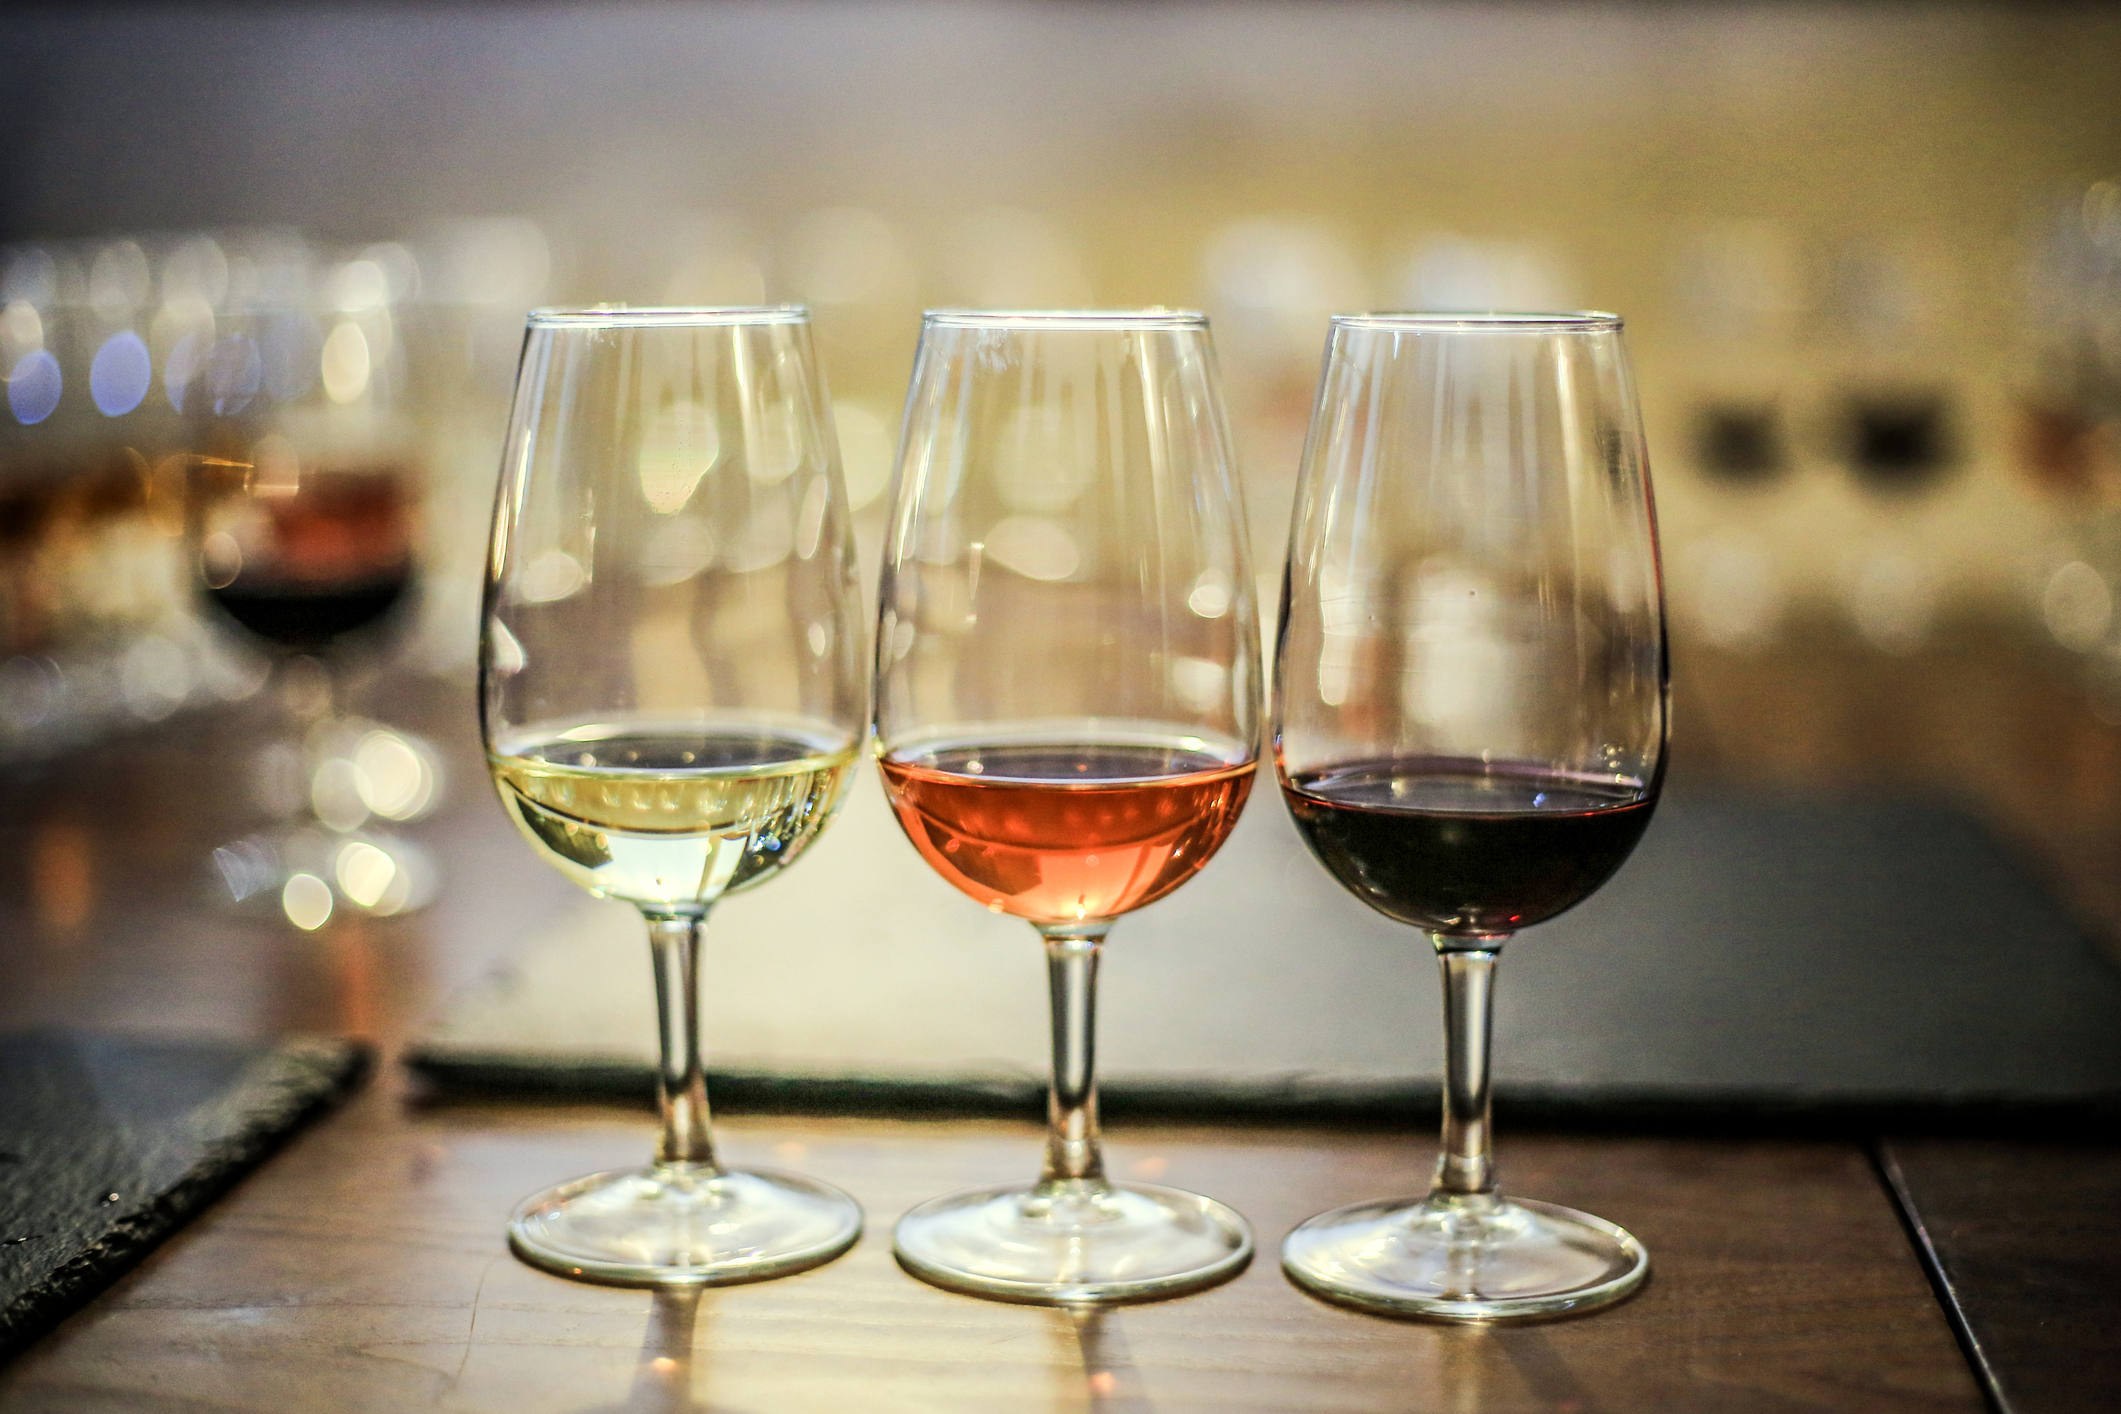 Enjoy the Tours at These Distinctive Wineries in Livermore